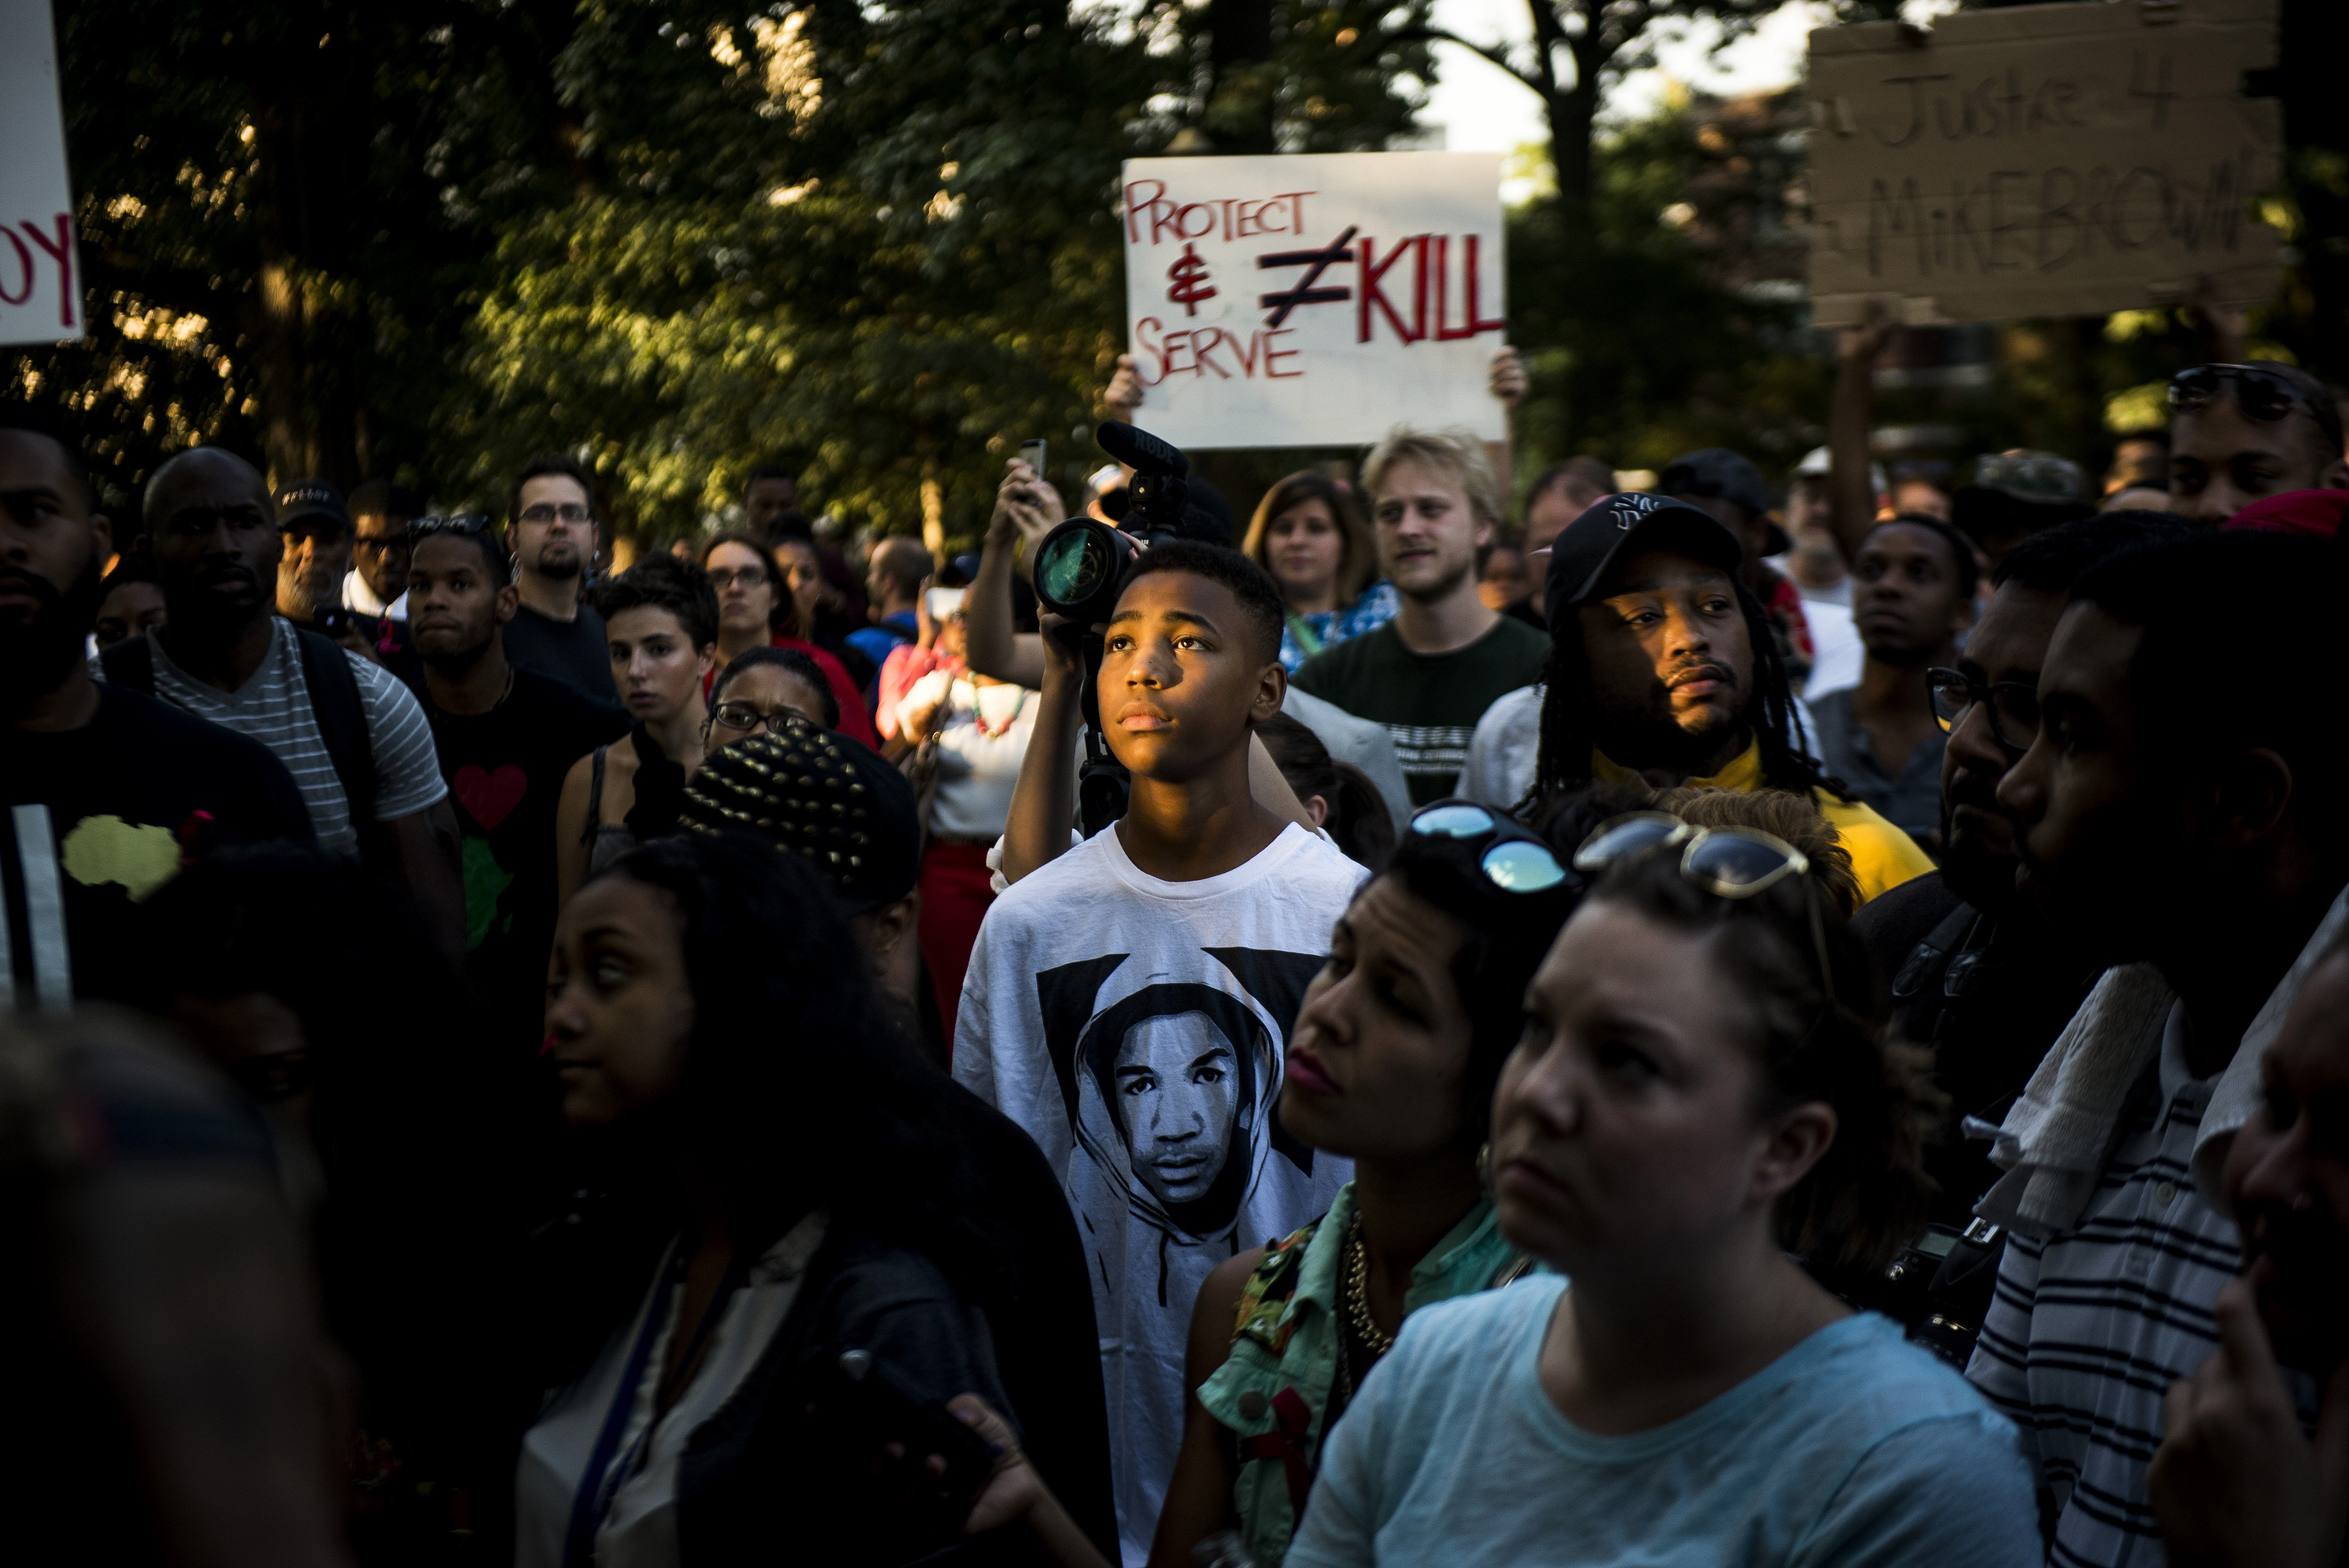 A demonstrator wearing a Trayvon Martin T-shirt stands with others in Washington D.C. to express solidarity with protesters in Ferguson, Mo., Aug. 14, 2014.